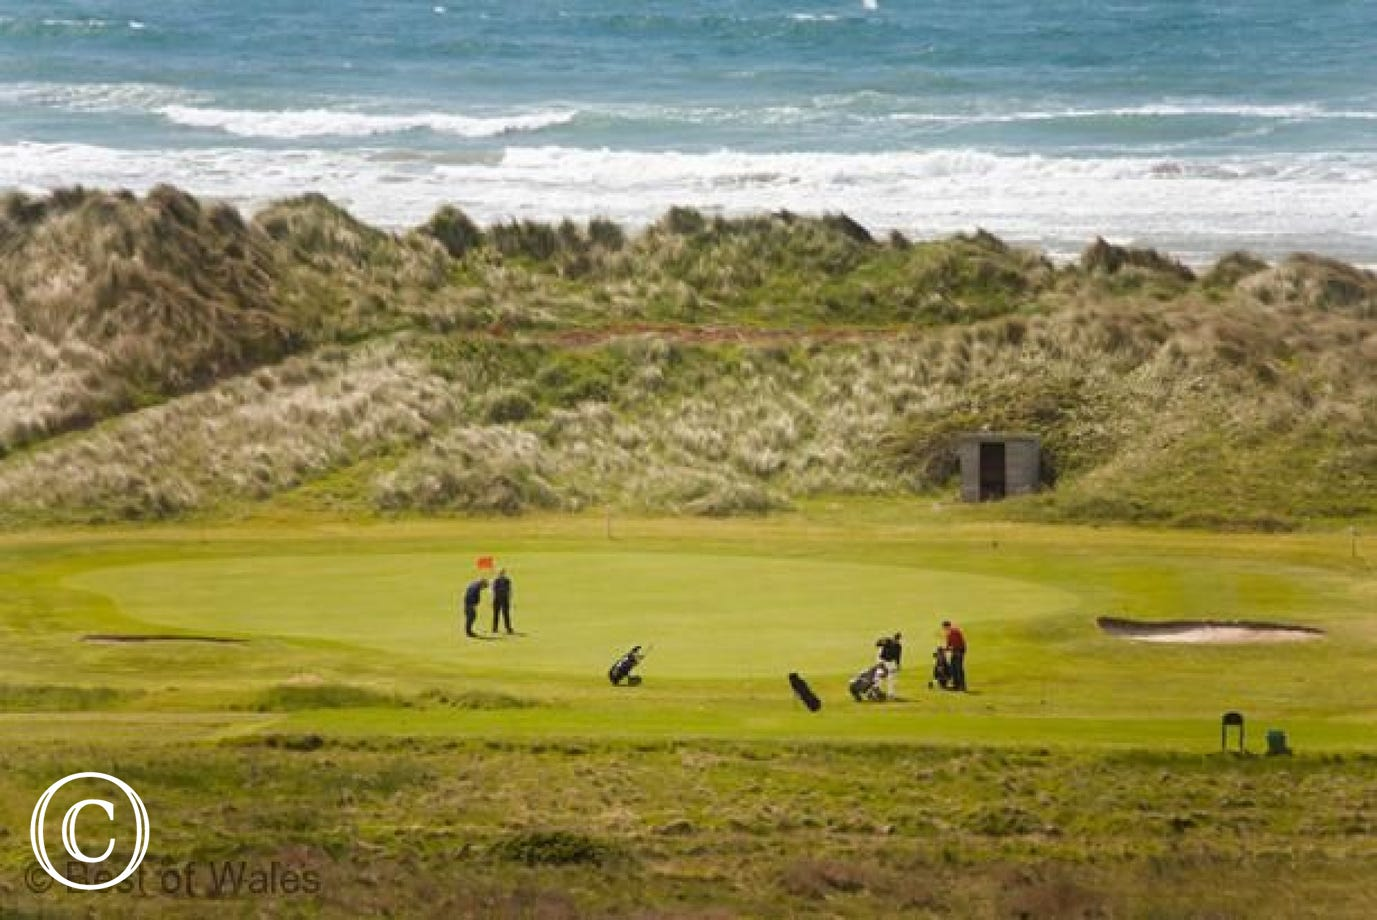 Aberdyfi (11.5 miles) also has a renowned 18 hole golf course.